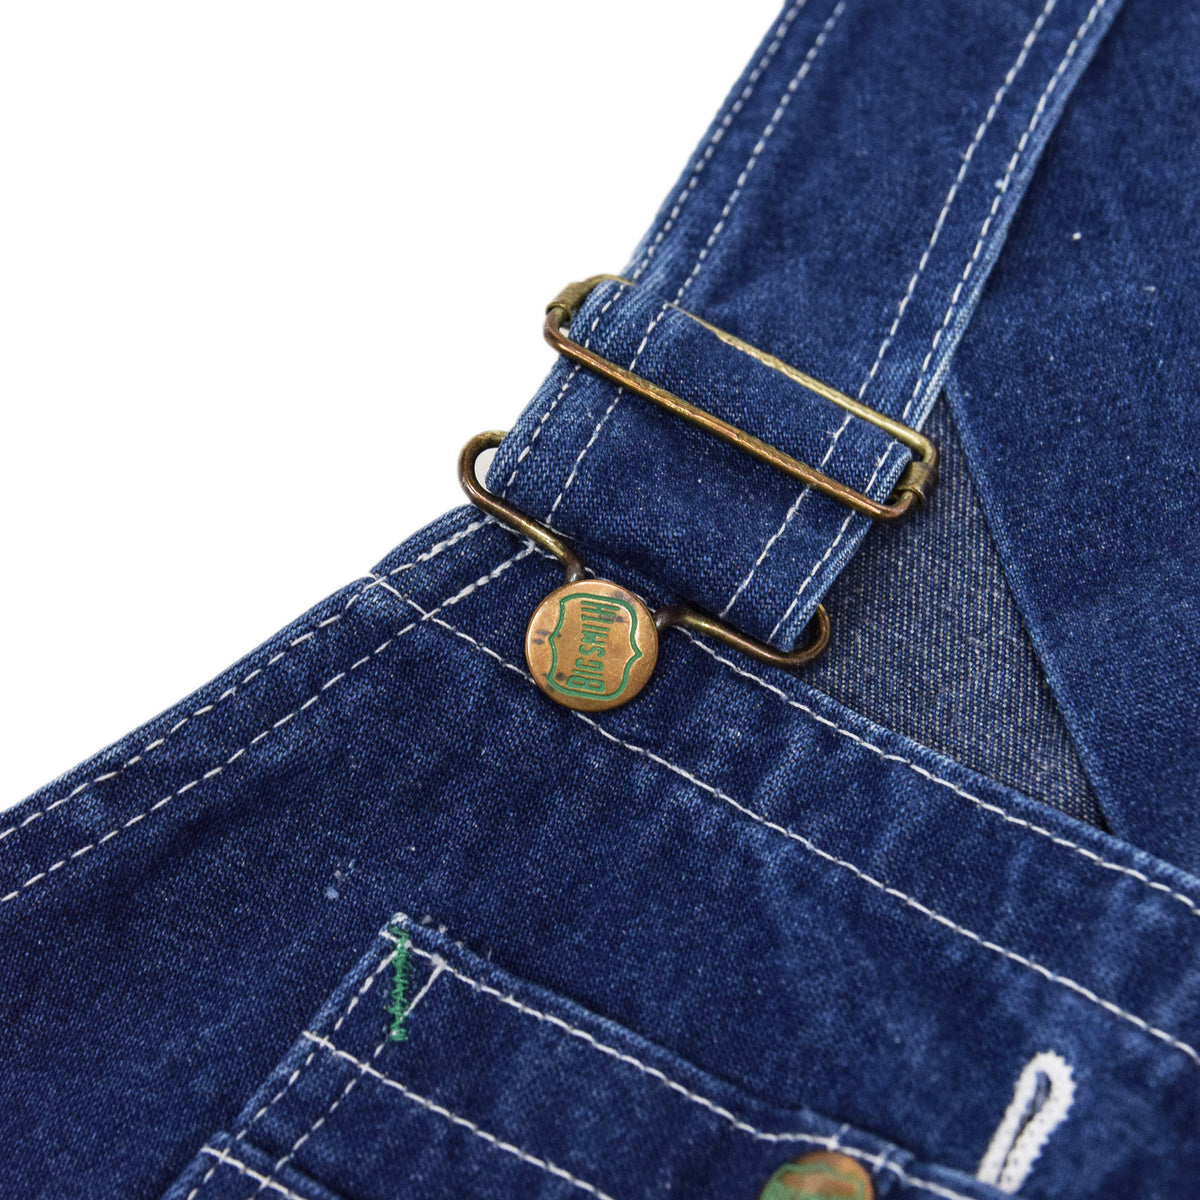 Vintage Big Smith Denim Work Dungarees Blue Bib Overalls Trousers M BUCKLE